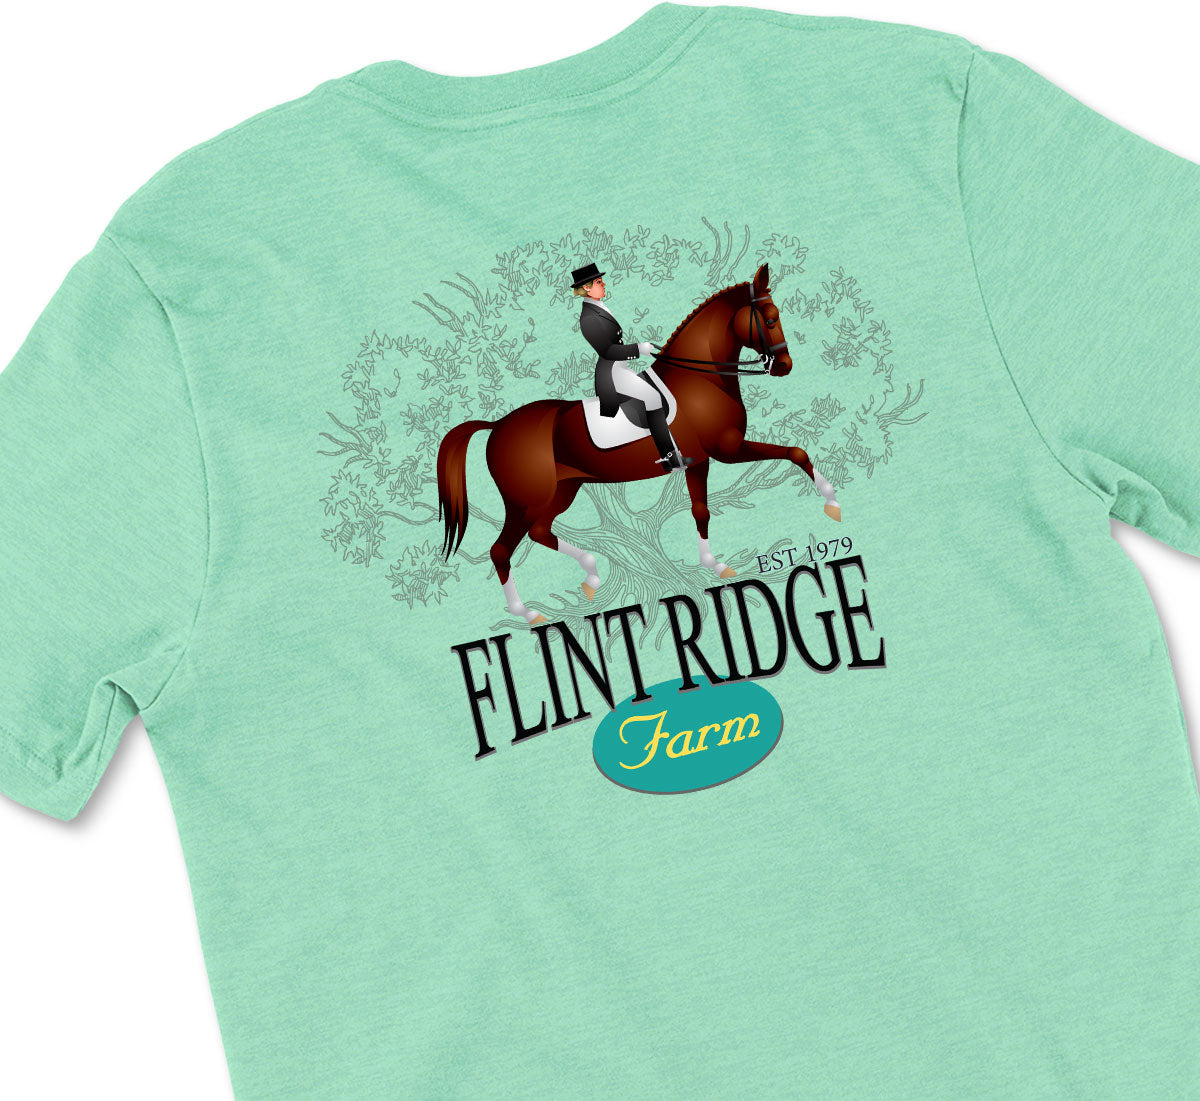 Flint Ridge Farm Dressage Tshirt